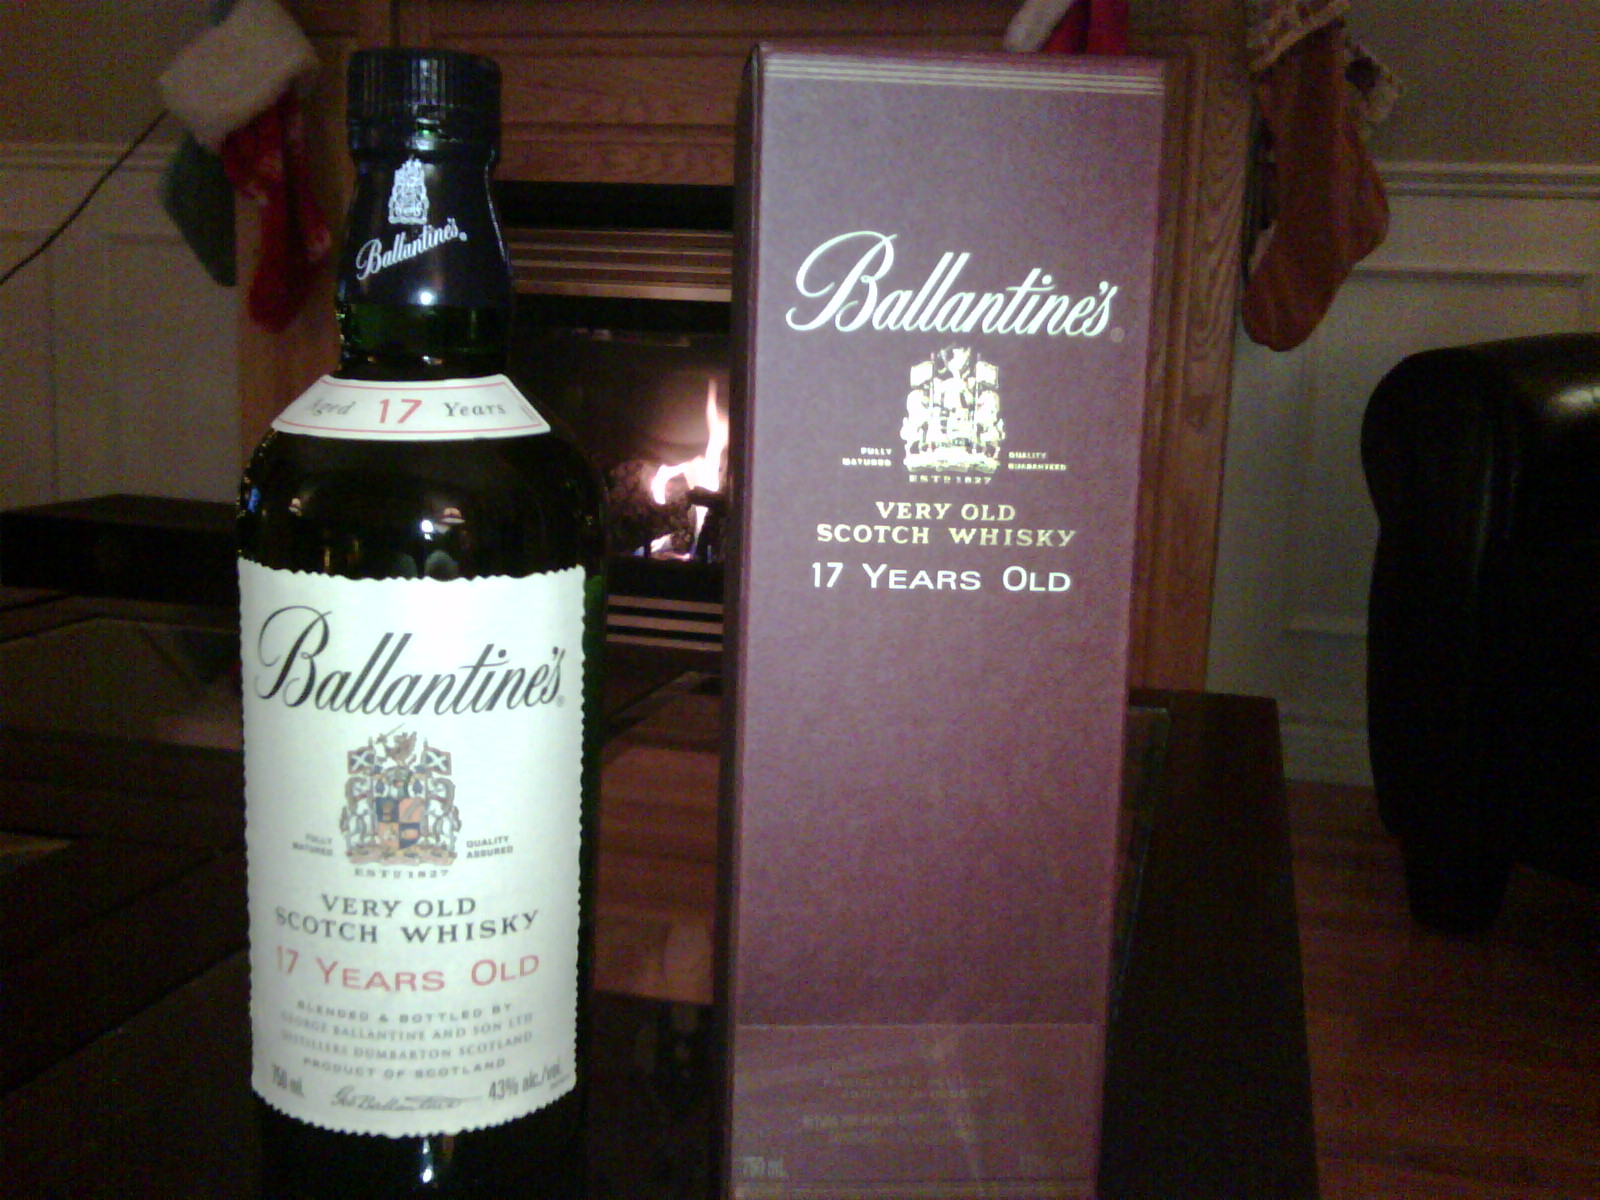 Ballantineu0027s 17 Years Old Blended Scotch Whisky